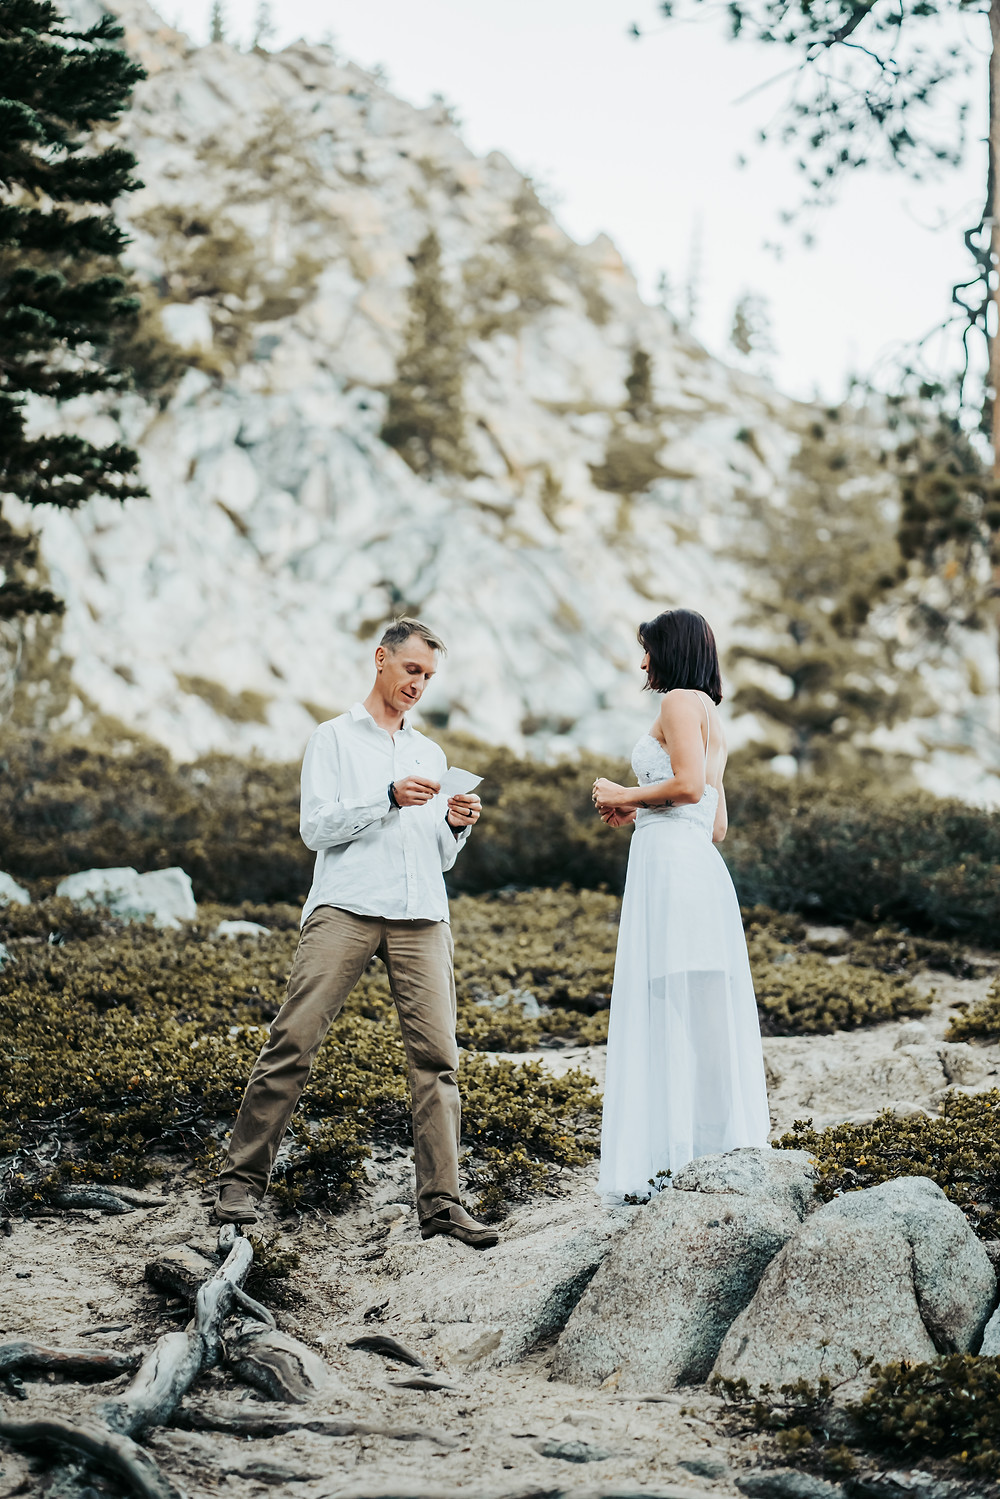 Bride and Groom reading vows in front of each other in front of a mountain backdrop in the mountains of Lake Tahoe.   Photo showing eloping in Lake Tahoe